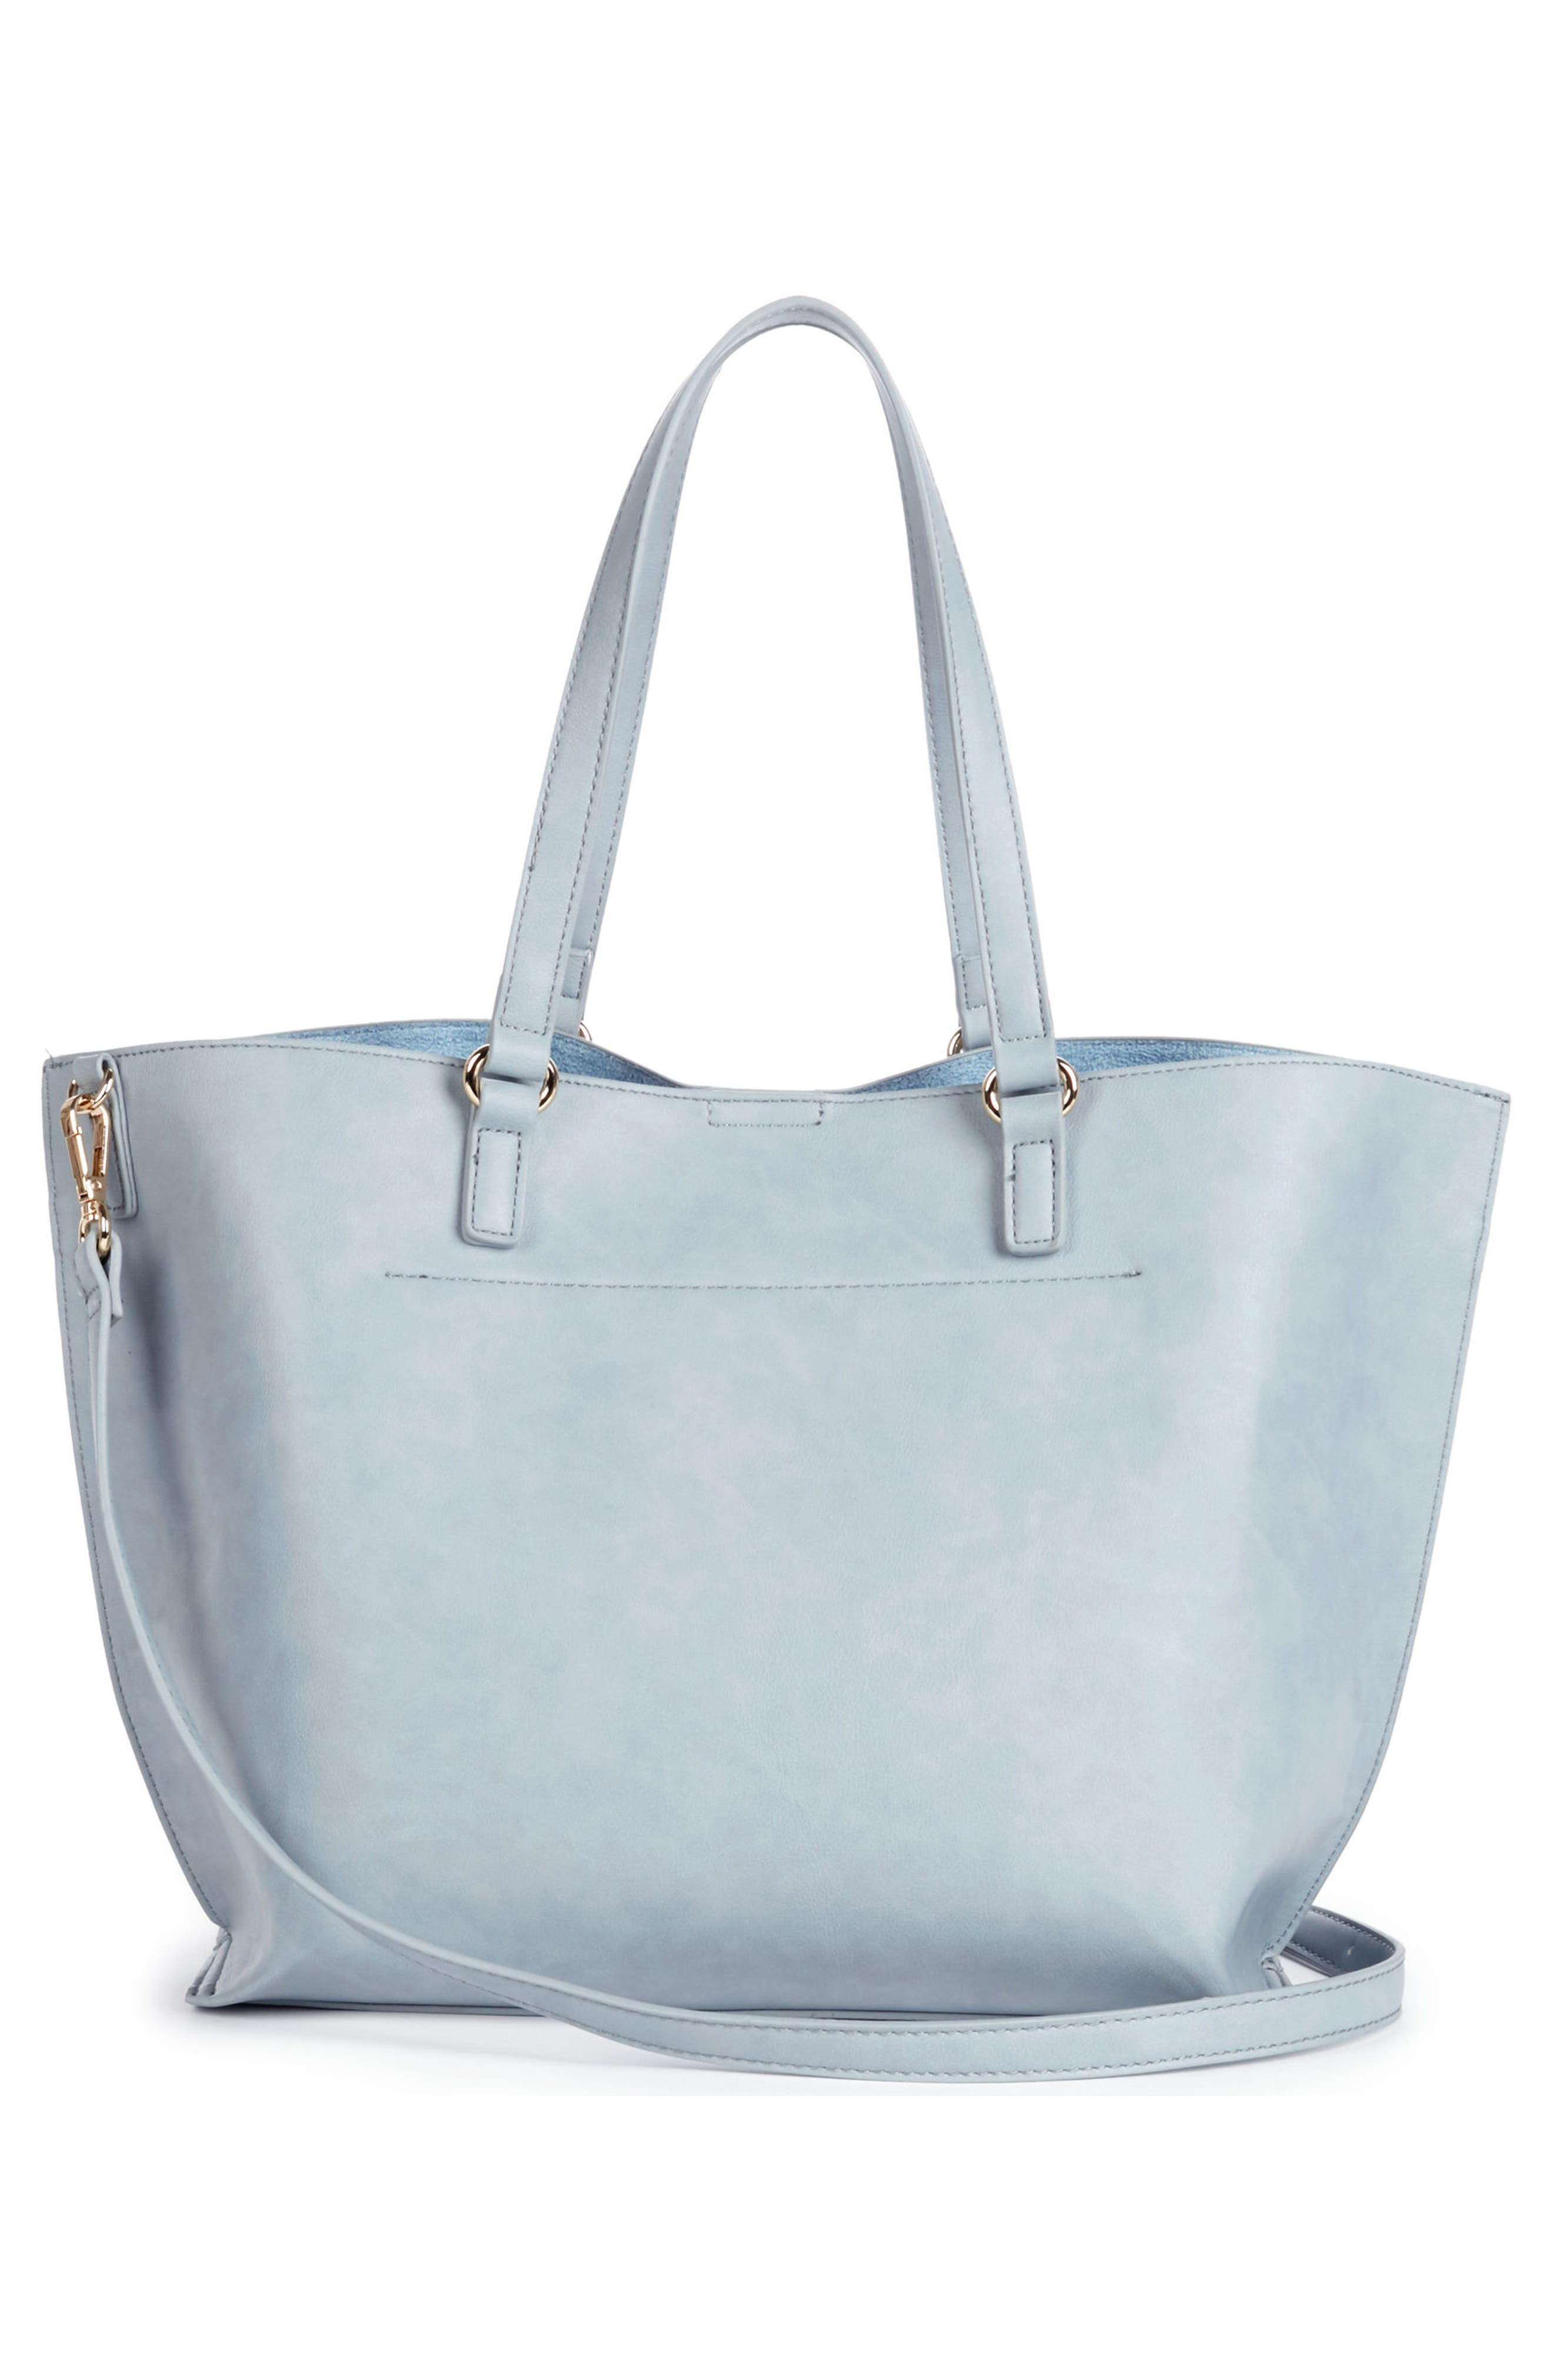 Adelina Ruffled Faux Leather Tote,                             Alternate thumbnail 3, color,                             Powder Blue